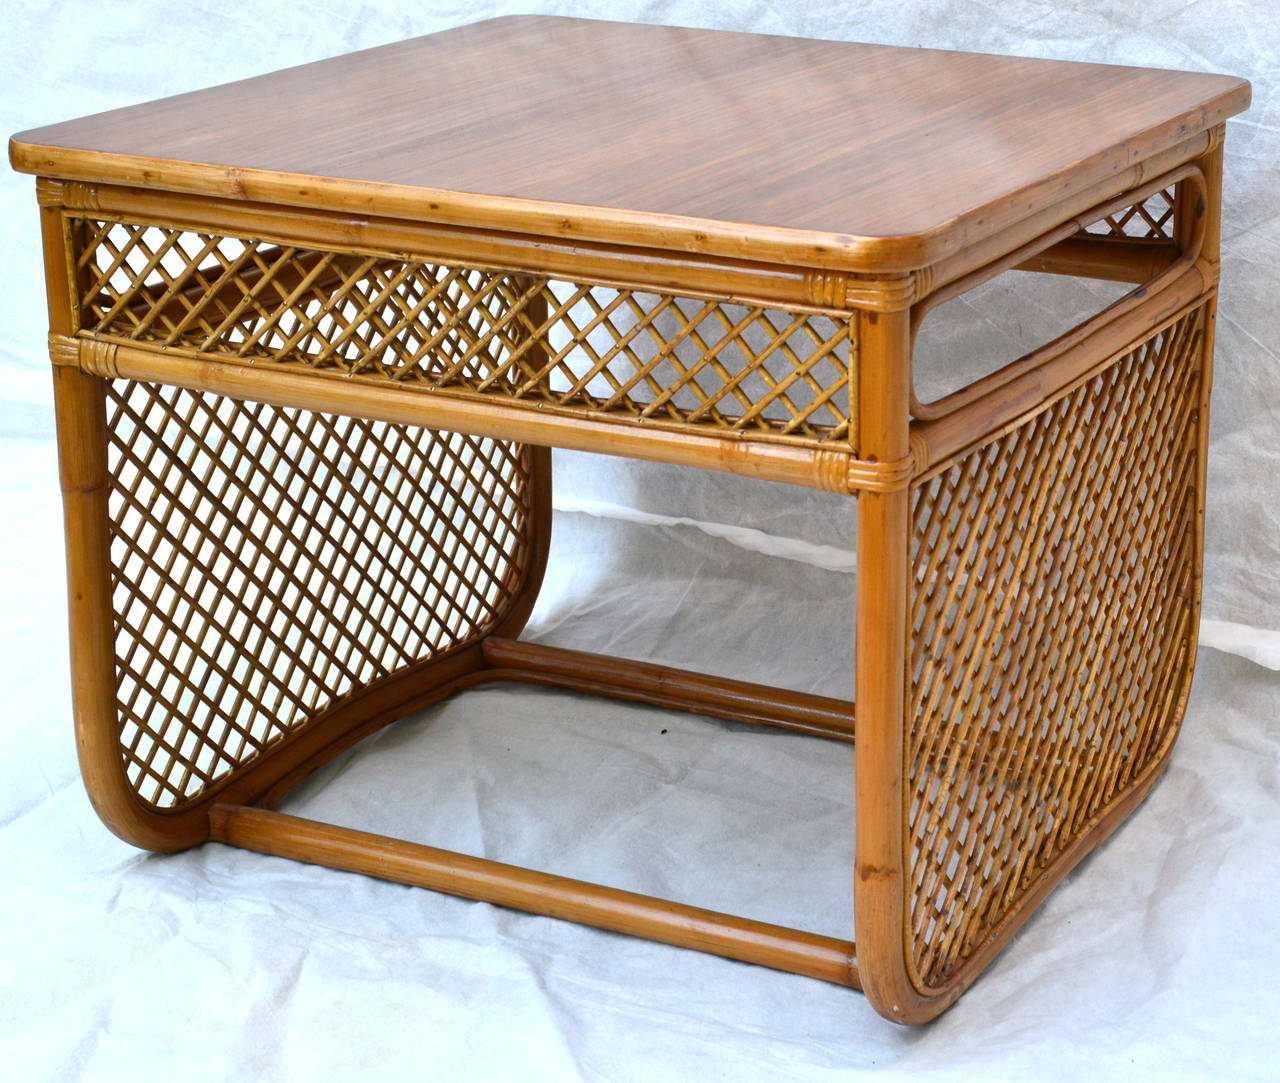 Bamboo Caned End Table With A Lacquered Teak Top. This Side Table Is Nicely  Detailed